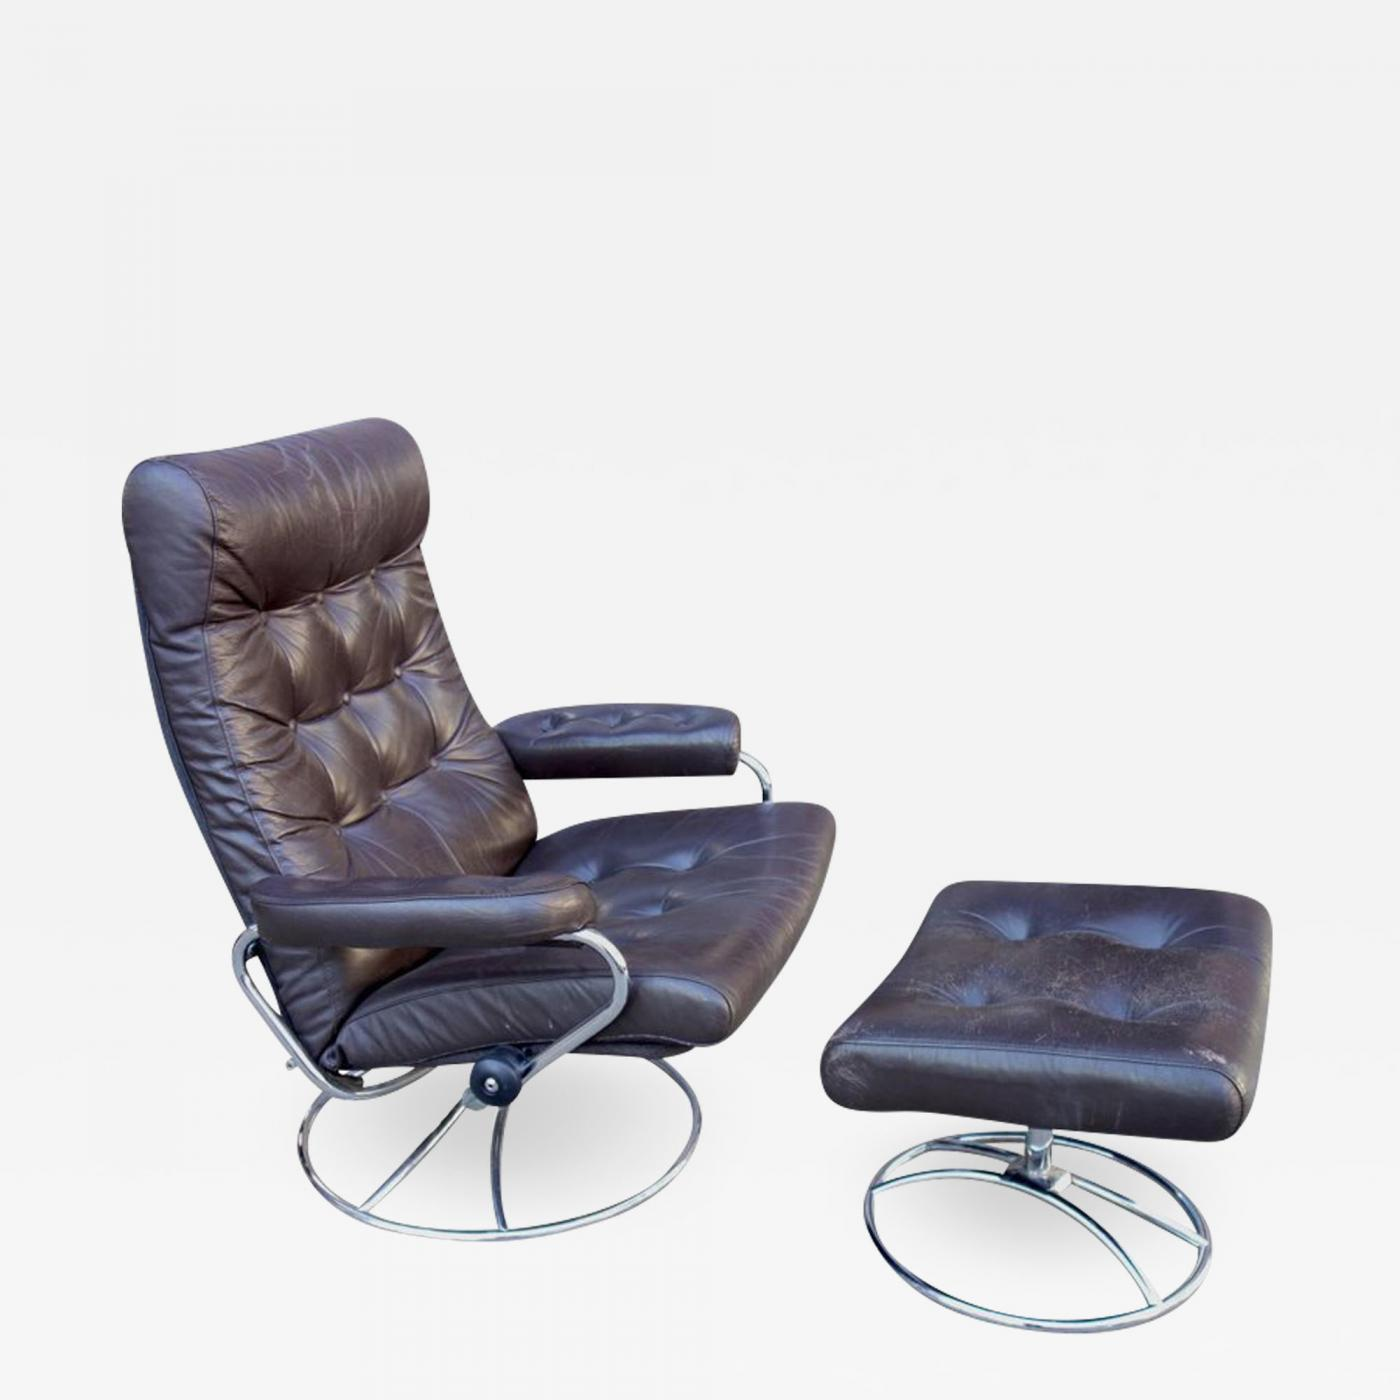 Stresless Ekornes Stressless Midcentury Reclining Stressless Lounge Chair And Ottoman By Ekornes